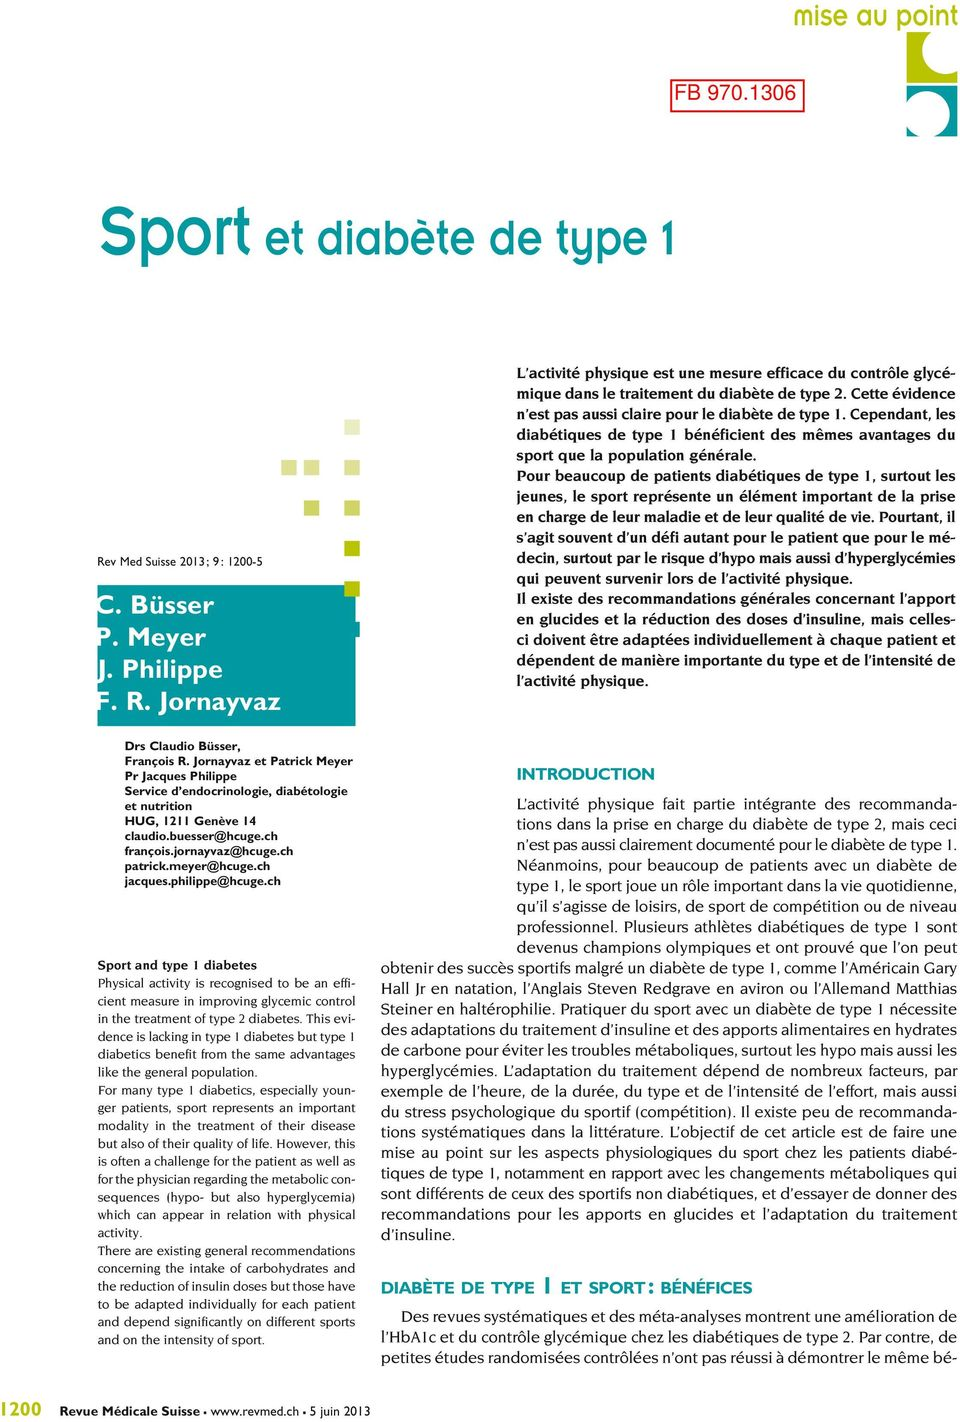 ch jacques.philippe@hcuge.ch Sport and type 1 diabetes Physical activity is recognised to be an efficient measure in improving glycemic control in the treatment of type 2 diabetes.